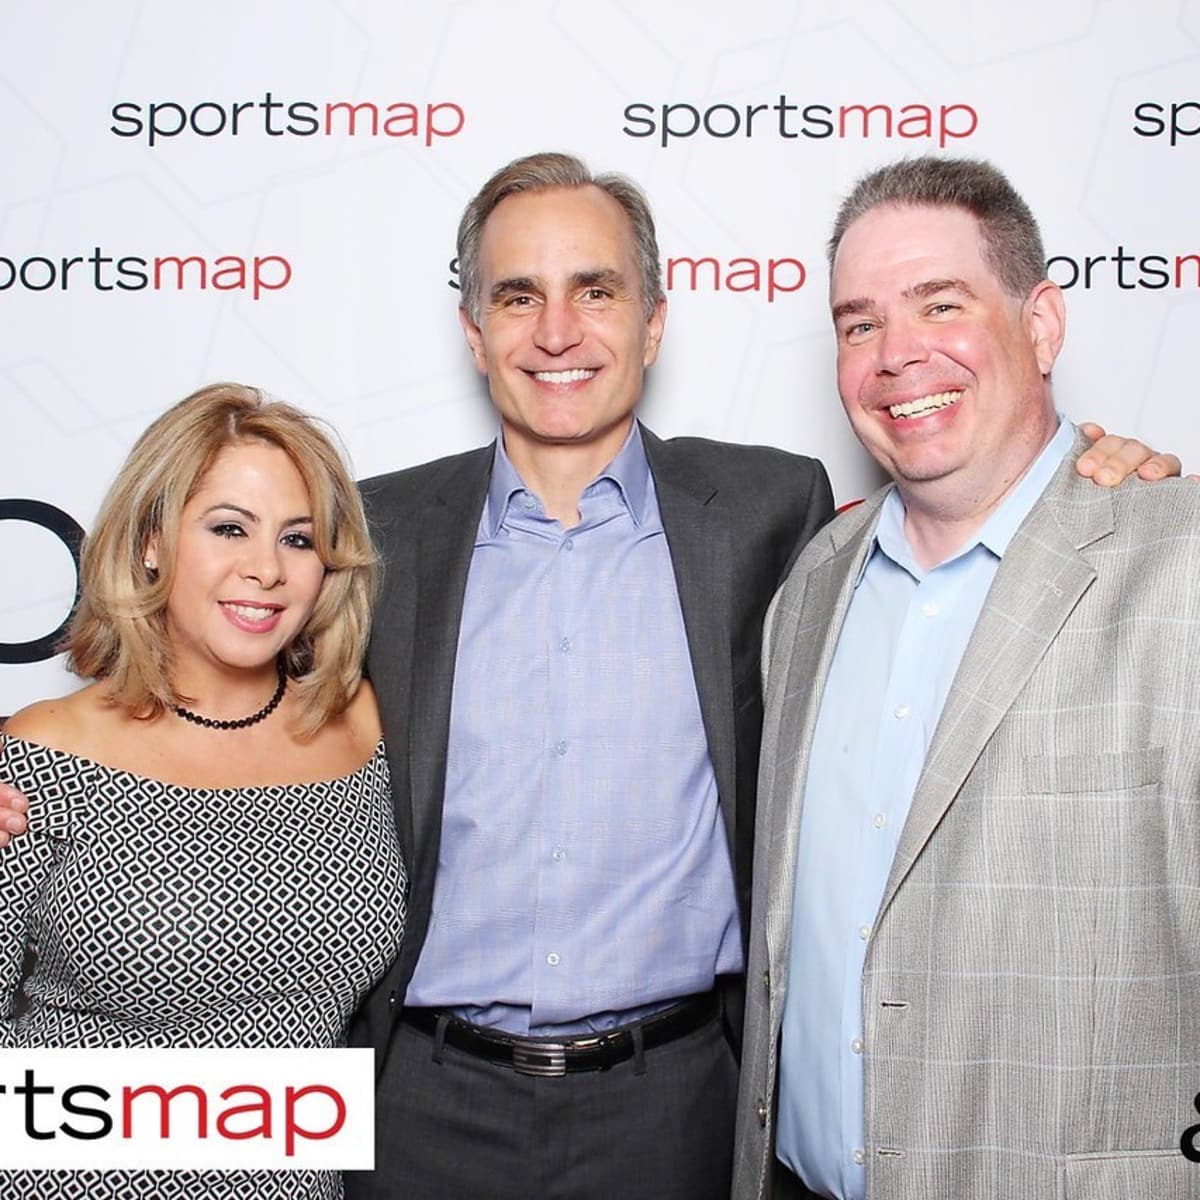 SportsMap launch party, Esmeralda Perez, David Gow, Craig Larson, October 2017